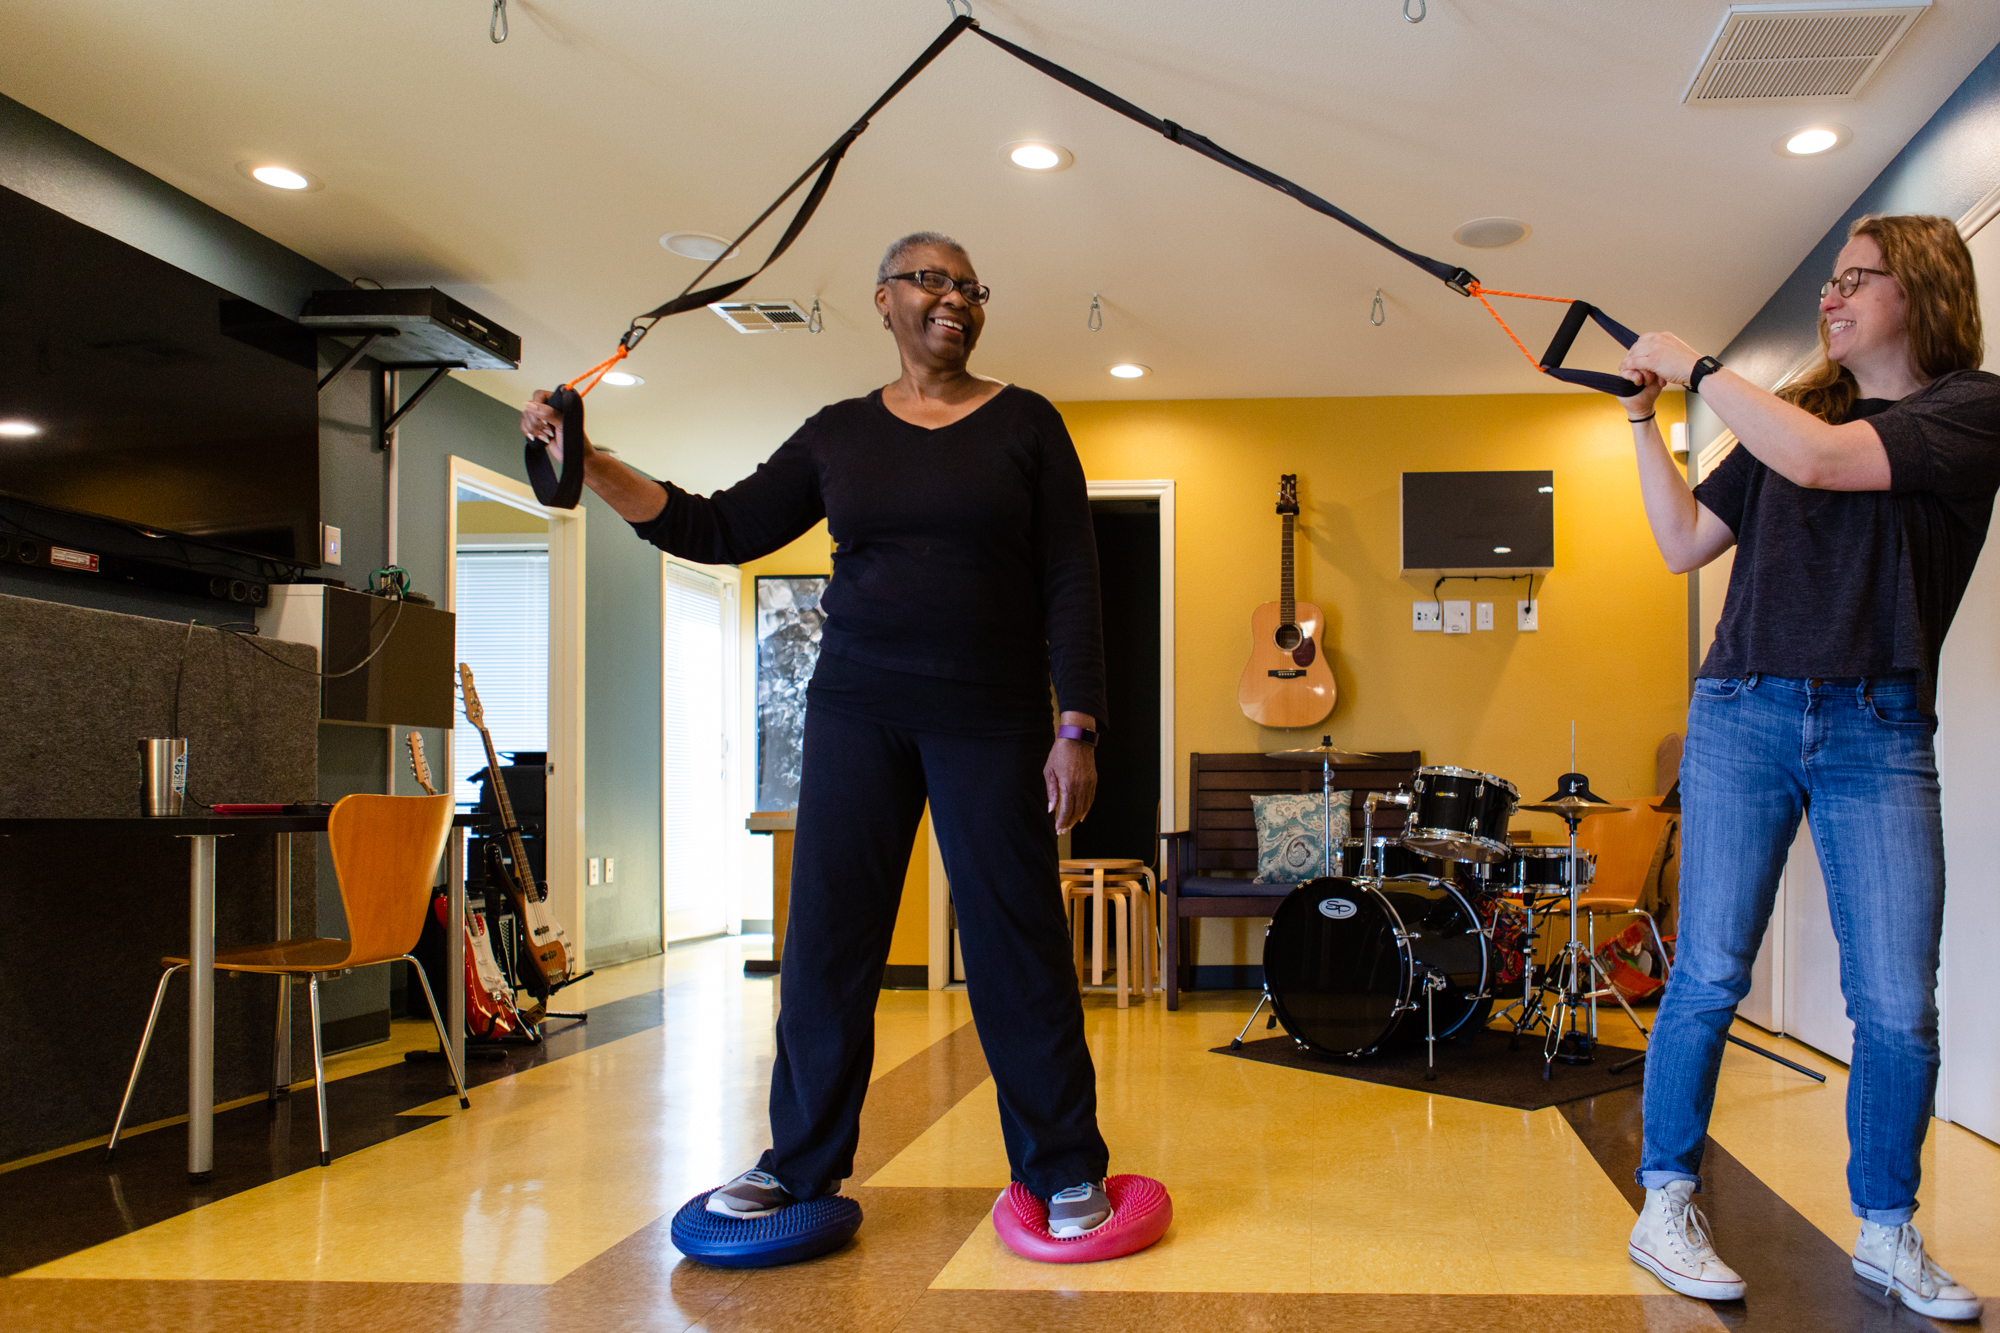 Davis works on a balance exercise with her music therapist Emily Morris. Davis says she likes to be challenged in these therapy sessions and Morris pushes her while making their sessions fun.